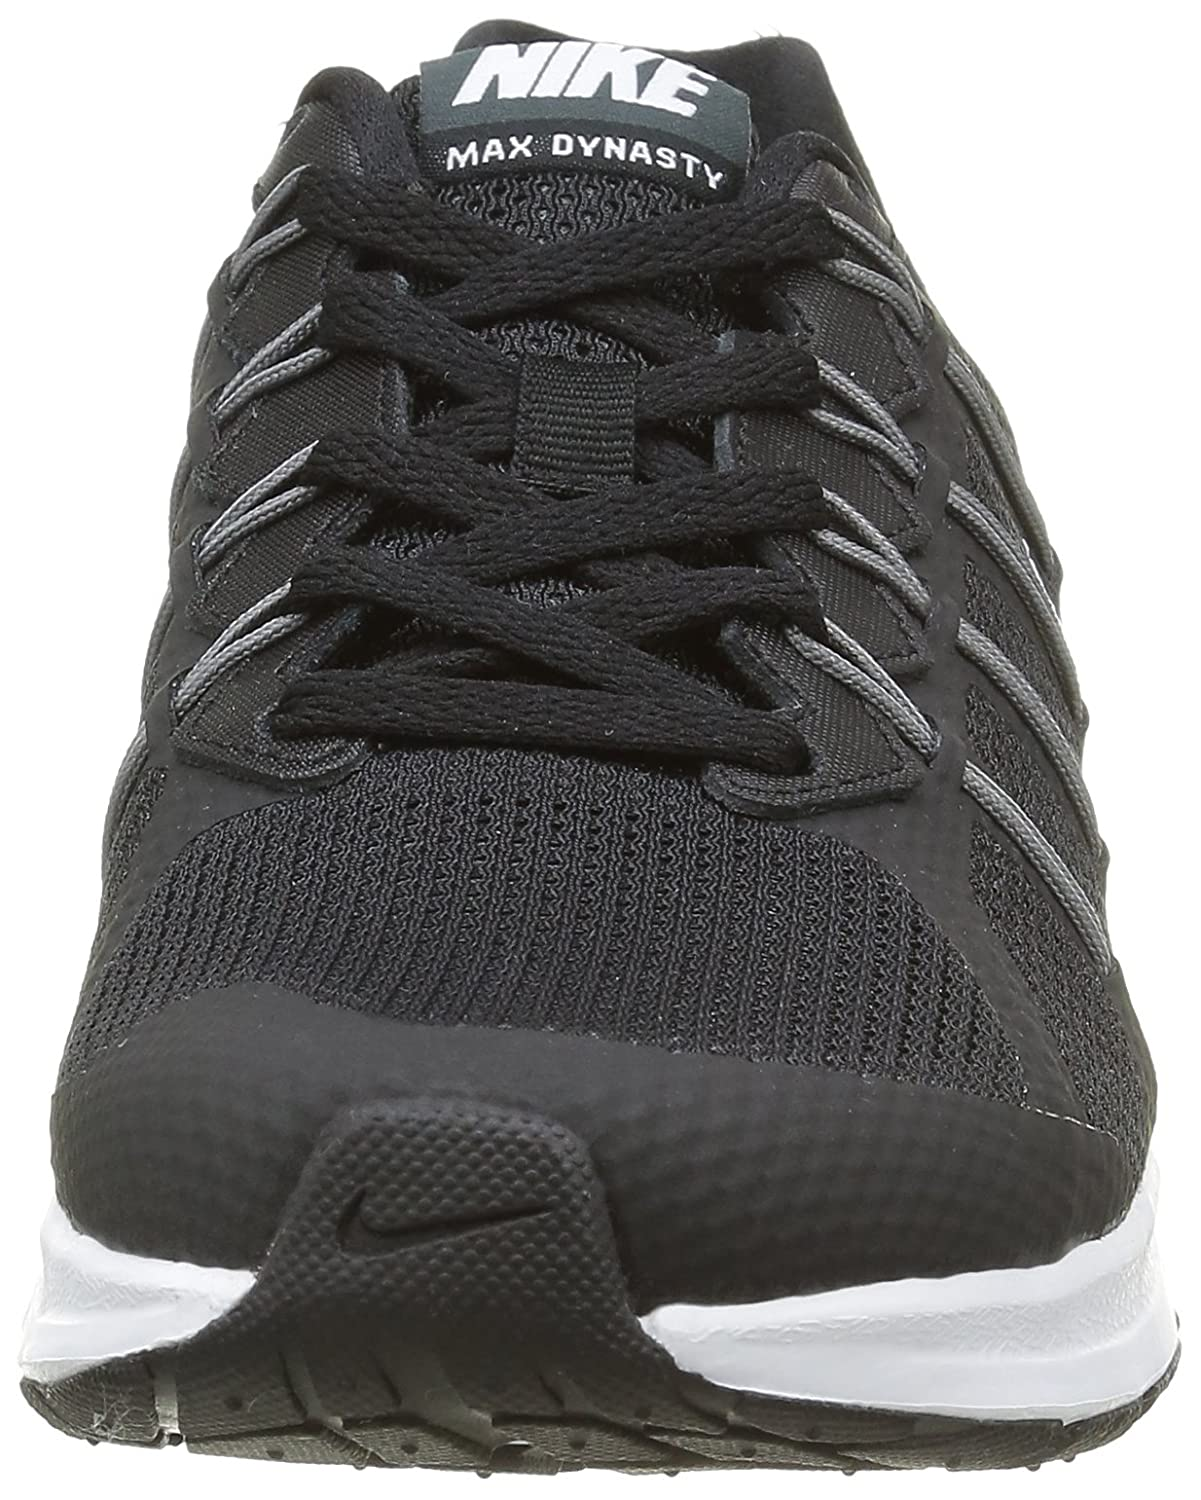 save off 4f5ab 79b97 Nike WMNS Air Max Dynasty, Chaussures de Running Femme, Noir Blanc Gris  Froid Anthracite, 42.5 EU  Amazon.fr  Chaussures et Sacs